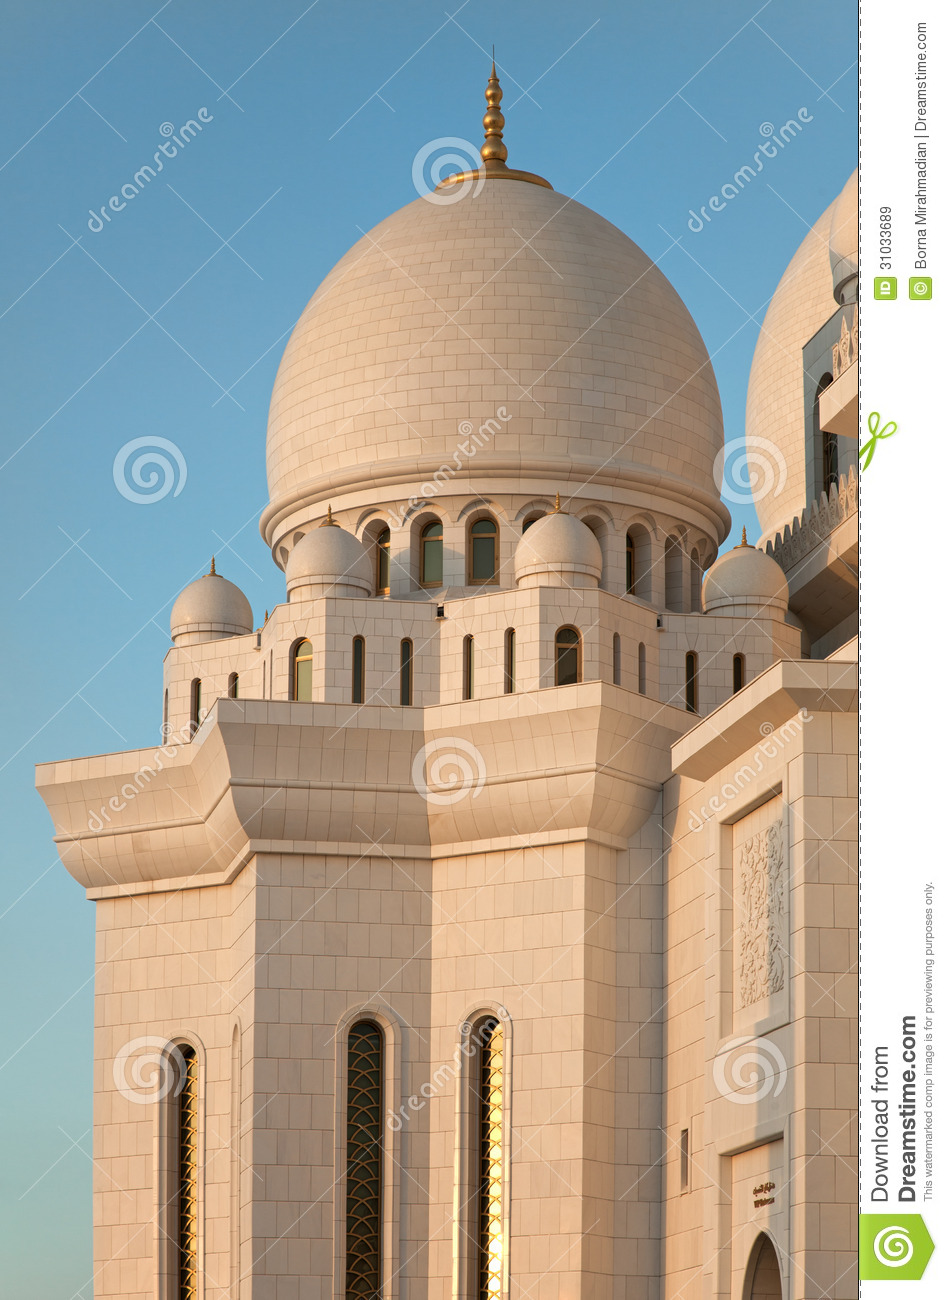 Exterior: White Marble Sheikh Zayed Mosque Of Abu Dhabi Royalty Free